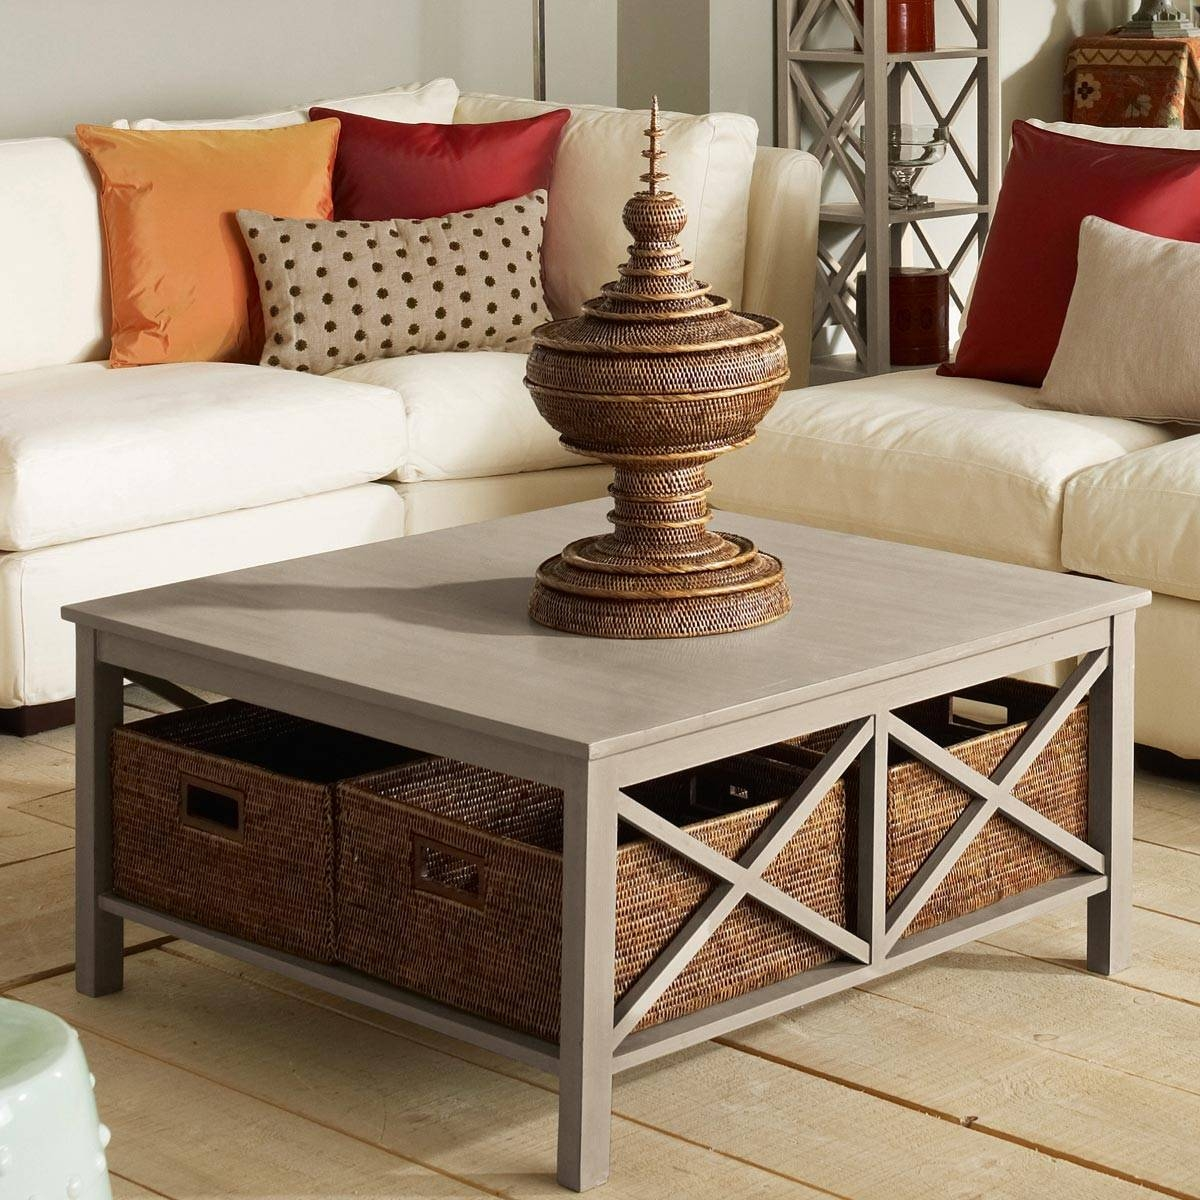 Coffee Table Storage : Efficient Storage Coffee Table – Home With Square Storage Coffee Tables (View 2 of 30)